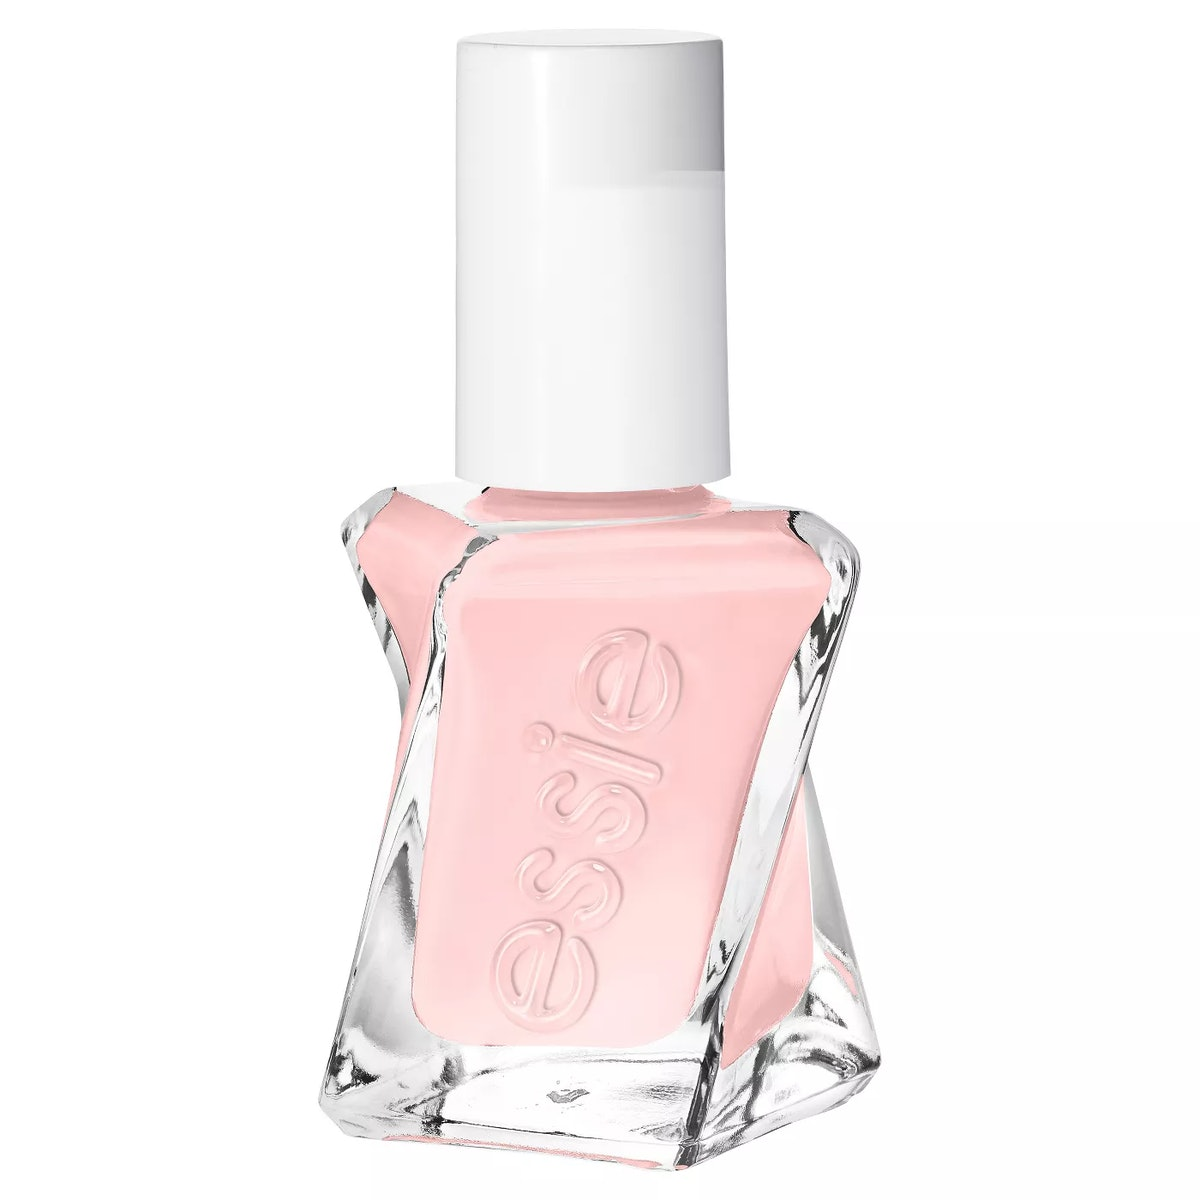 Essie Gel Couture Nail Polish in Lace Me Up